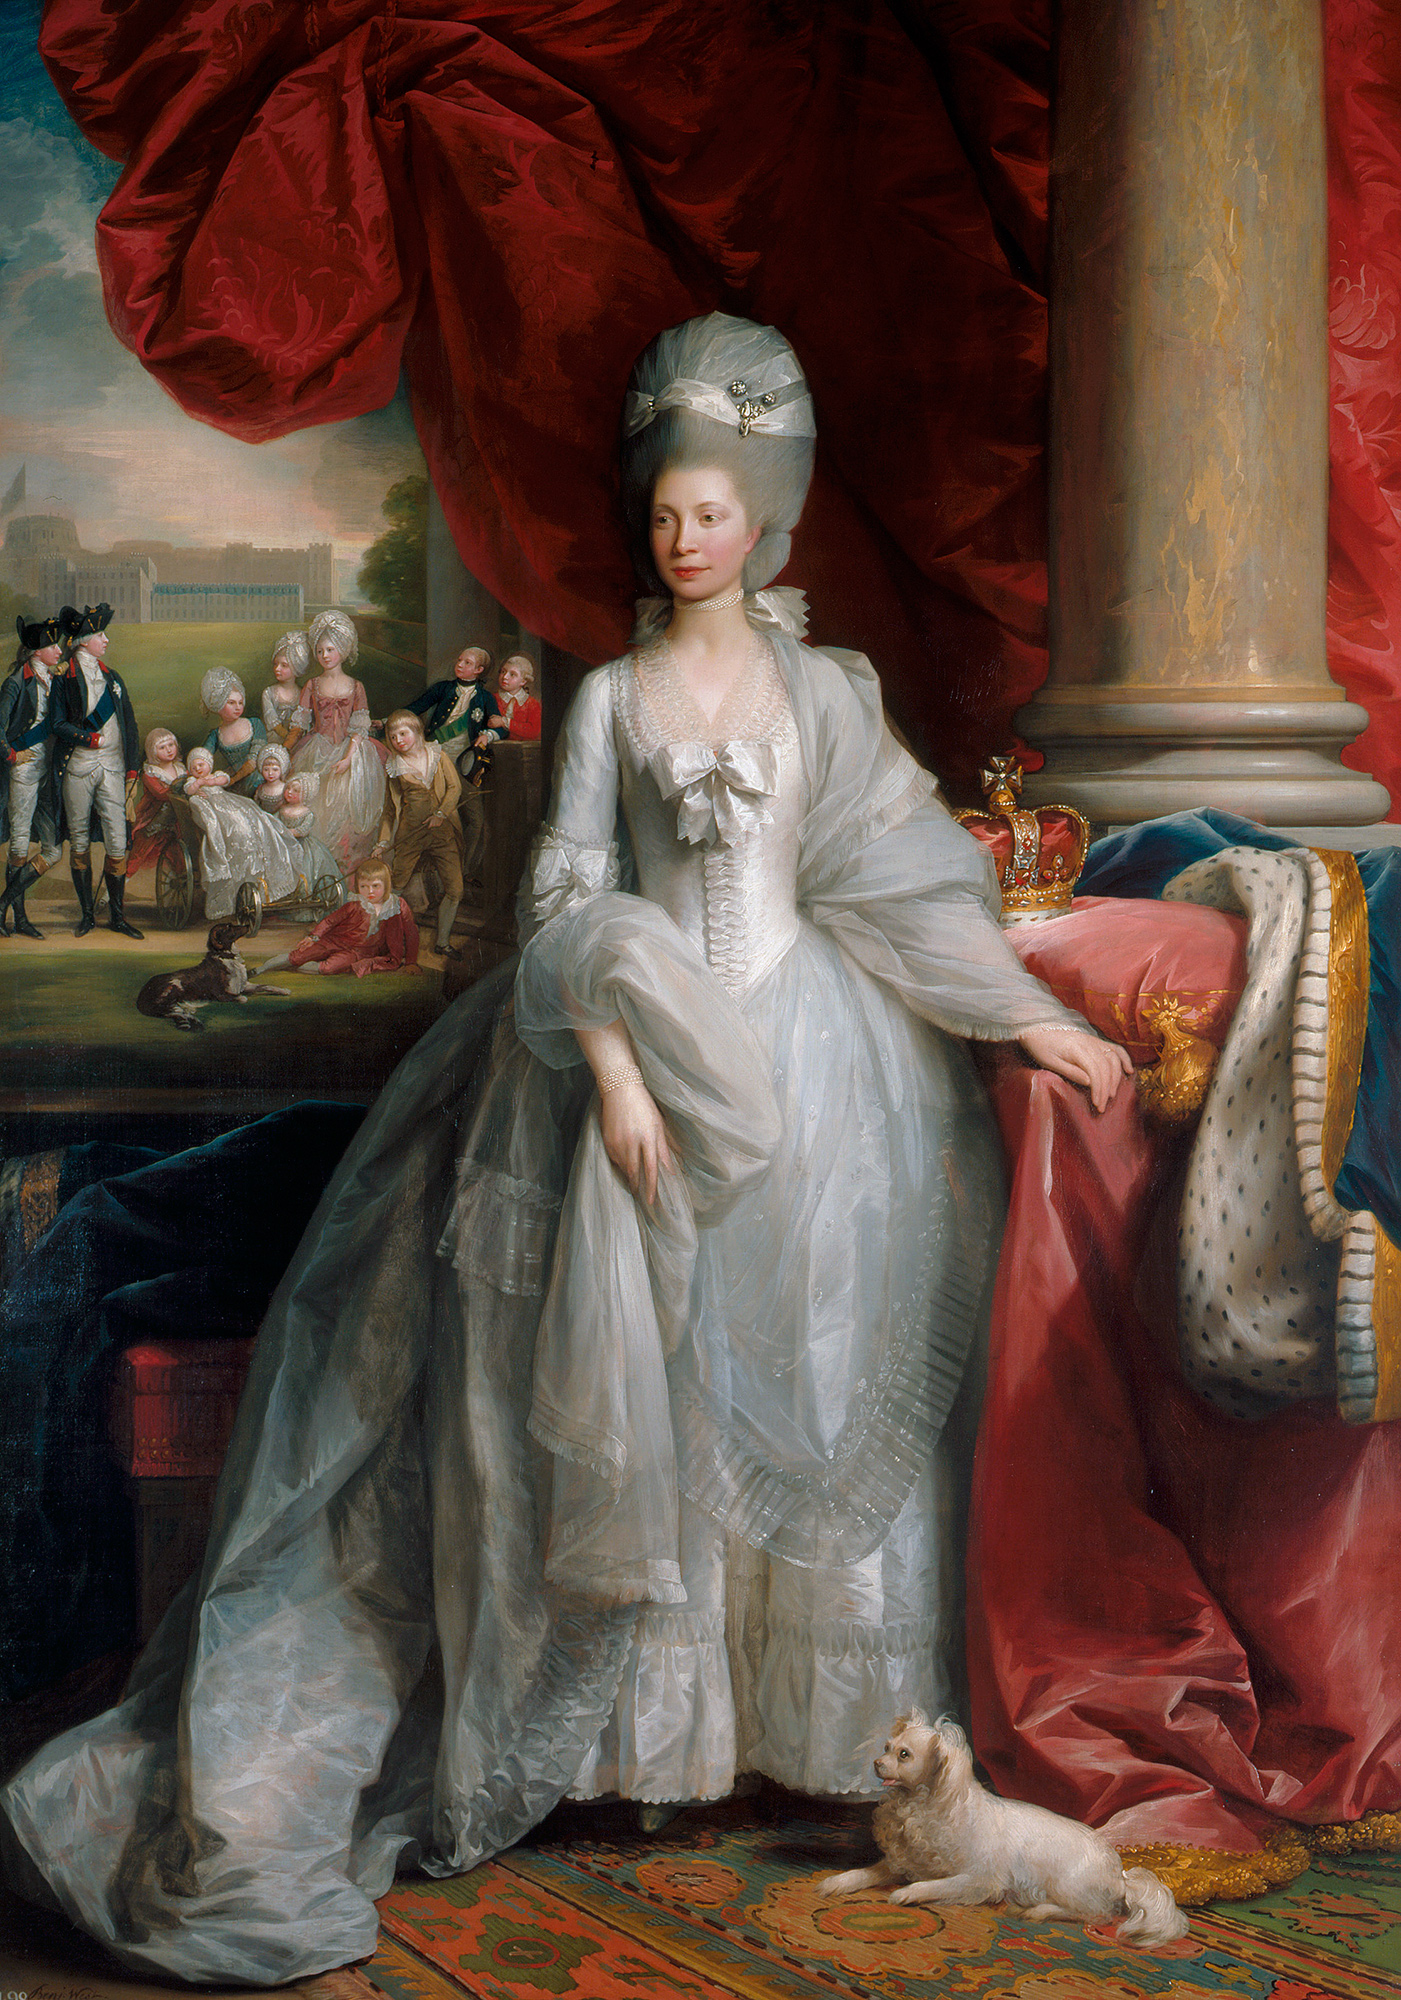 EMBARGOED UNTIL 00:01 SATURDAY 28 JANUARY 2017 Benjamin West, Queen Charlotte, 1779 Credit: Royal Collection Trust / © Her Majesty Queen Elizabeth II 2017 Single use only; not to be archived or passed on to third parties